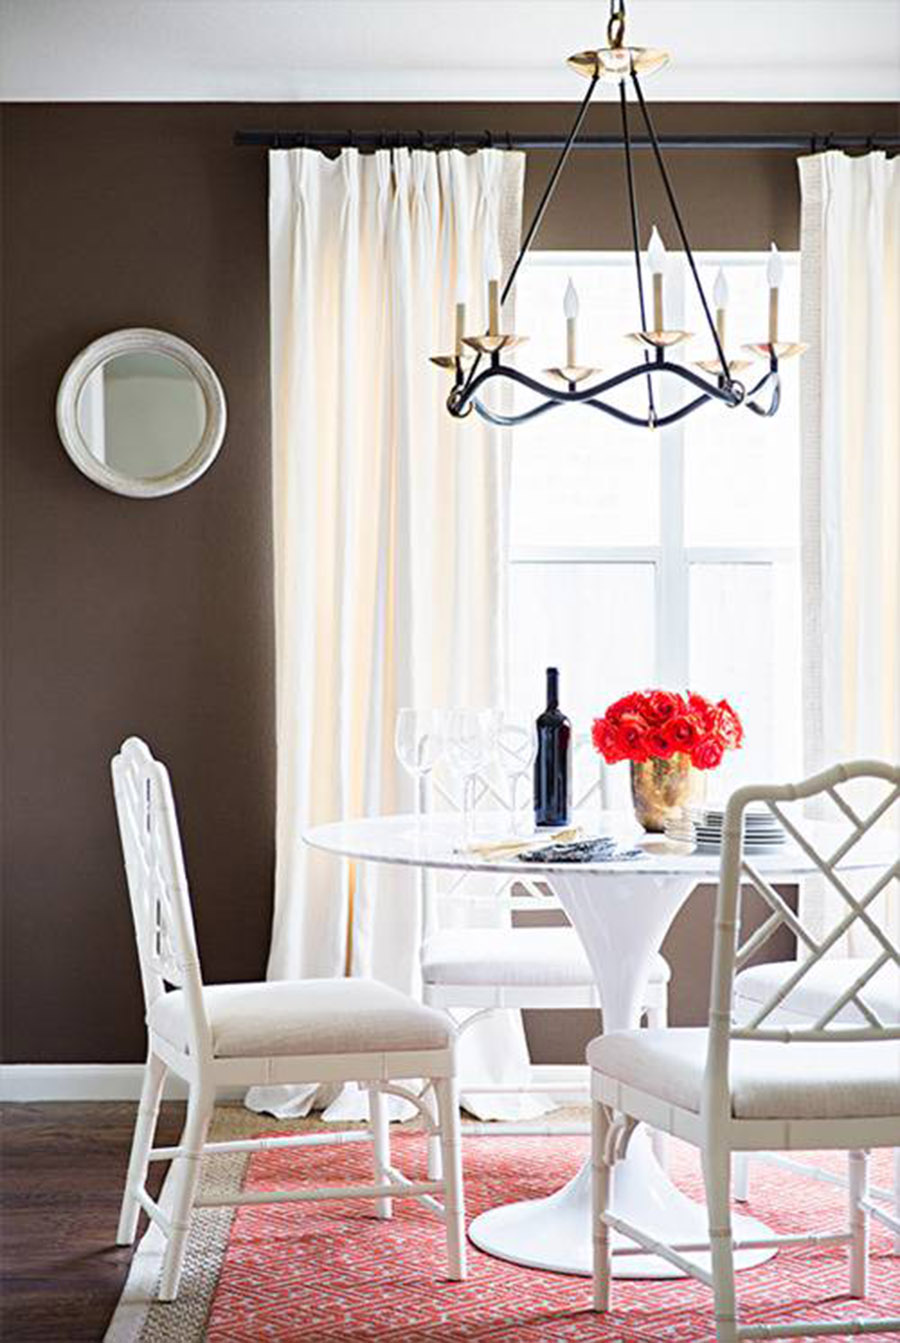 Home Tour, Decorating, House inspiration, Home Decor, Small Tables